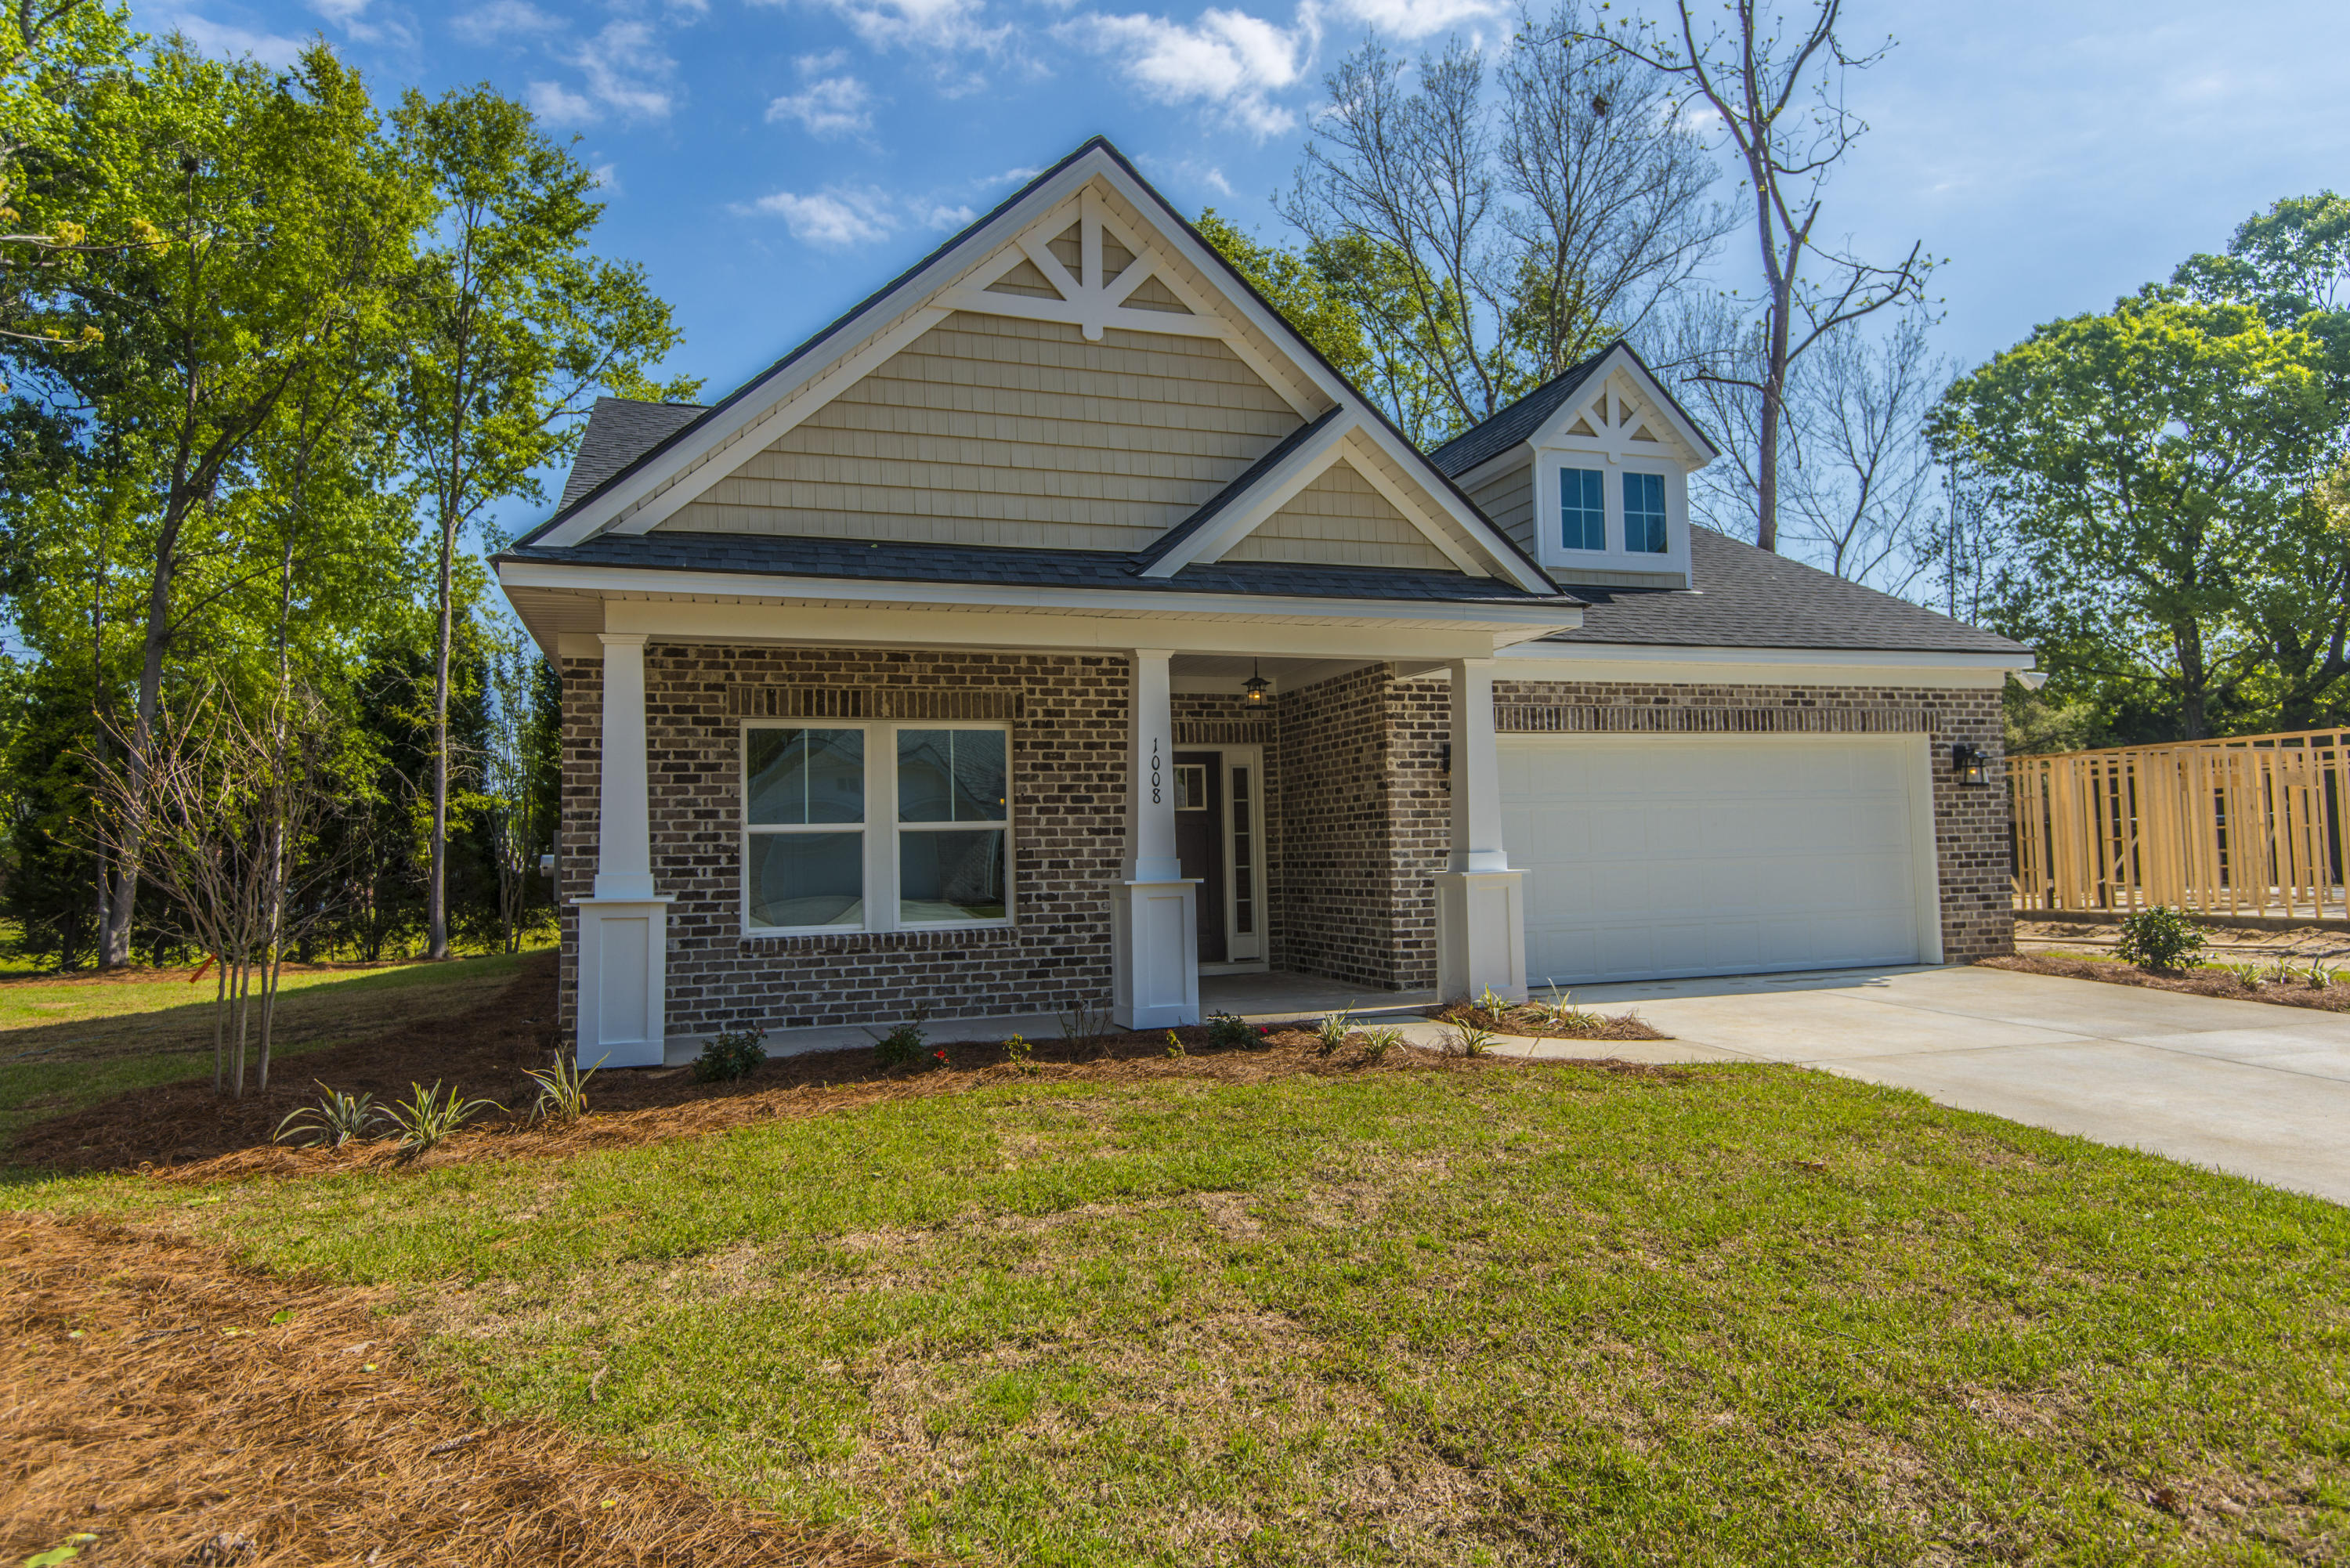 Photo of 1008 Baker Dr, Moncks Corner, SC 29461